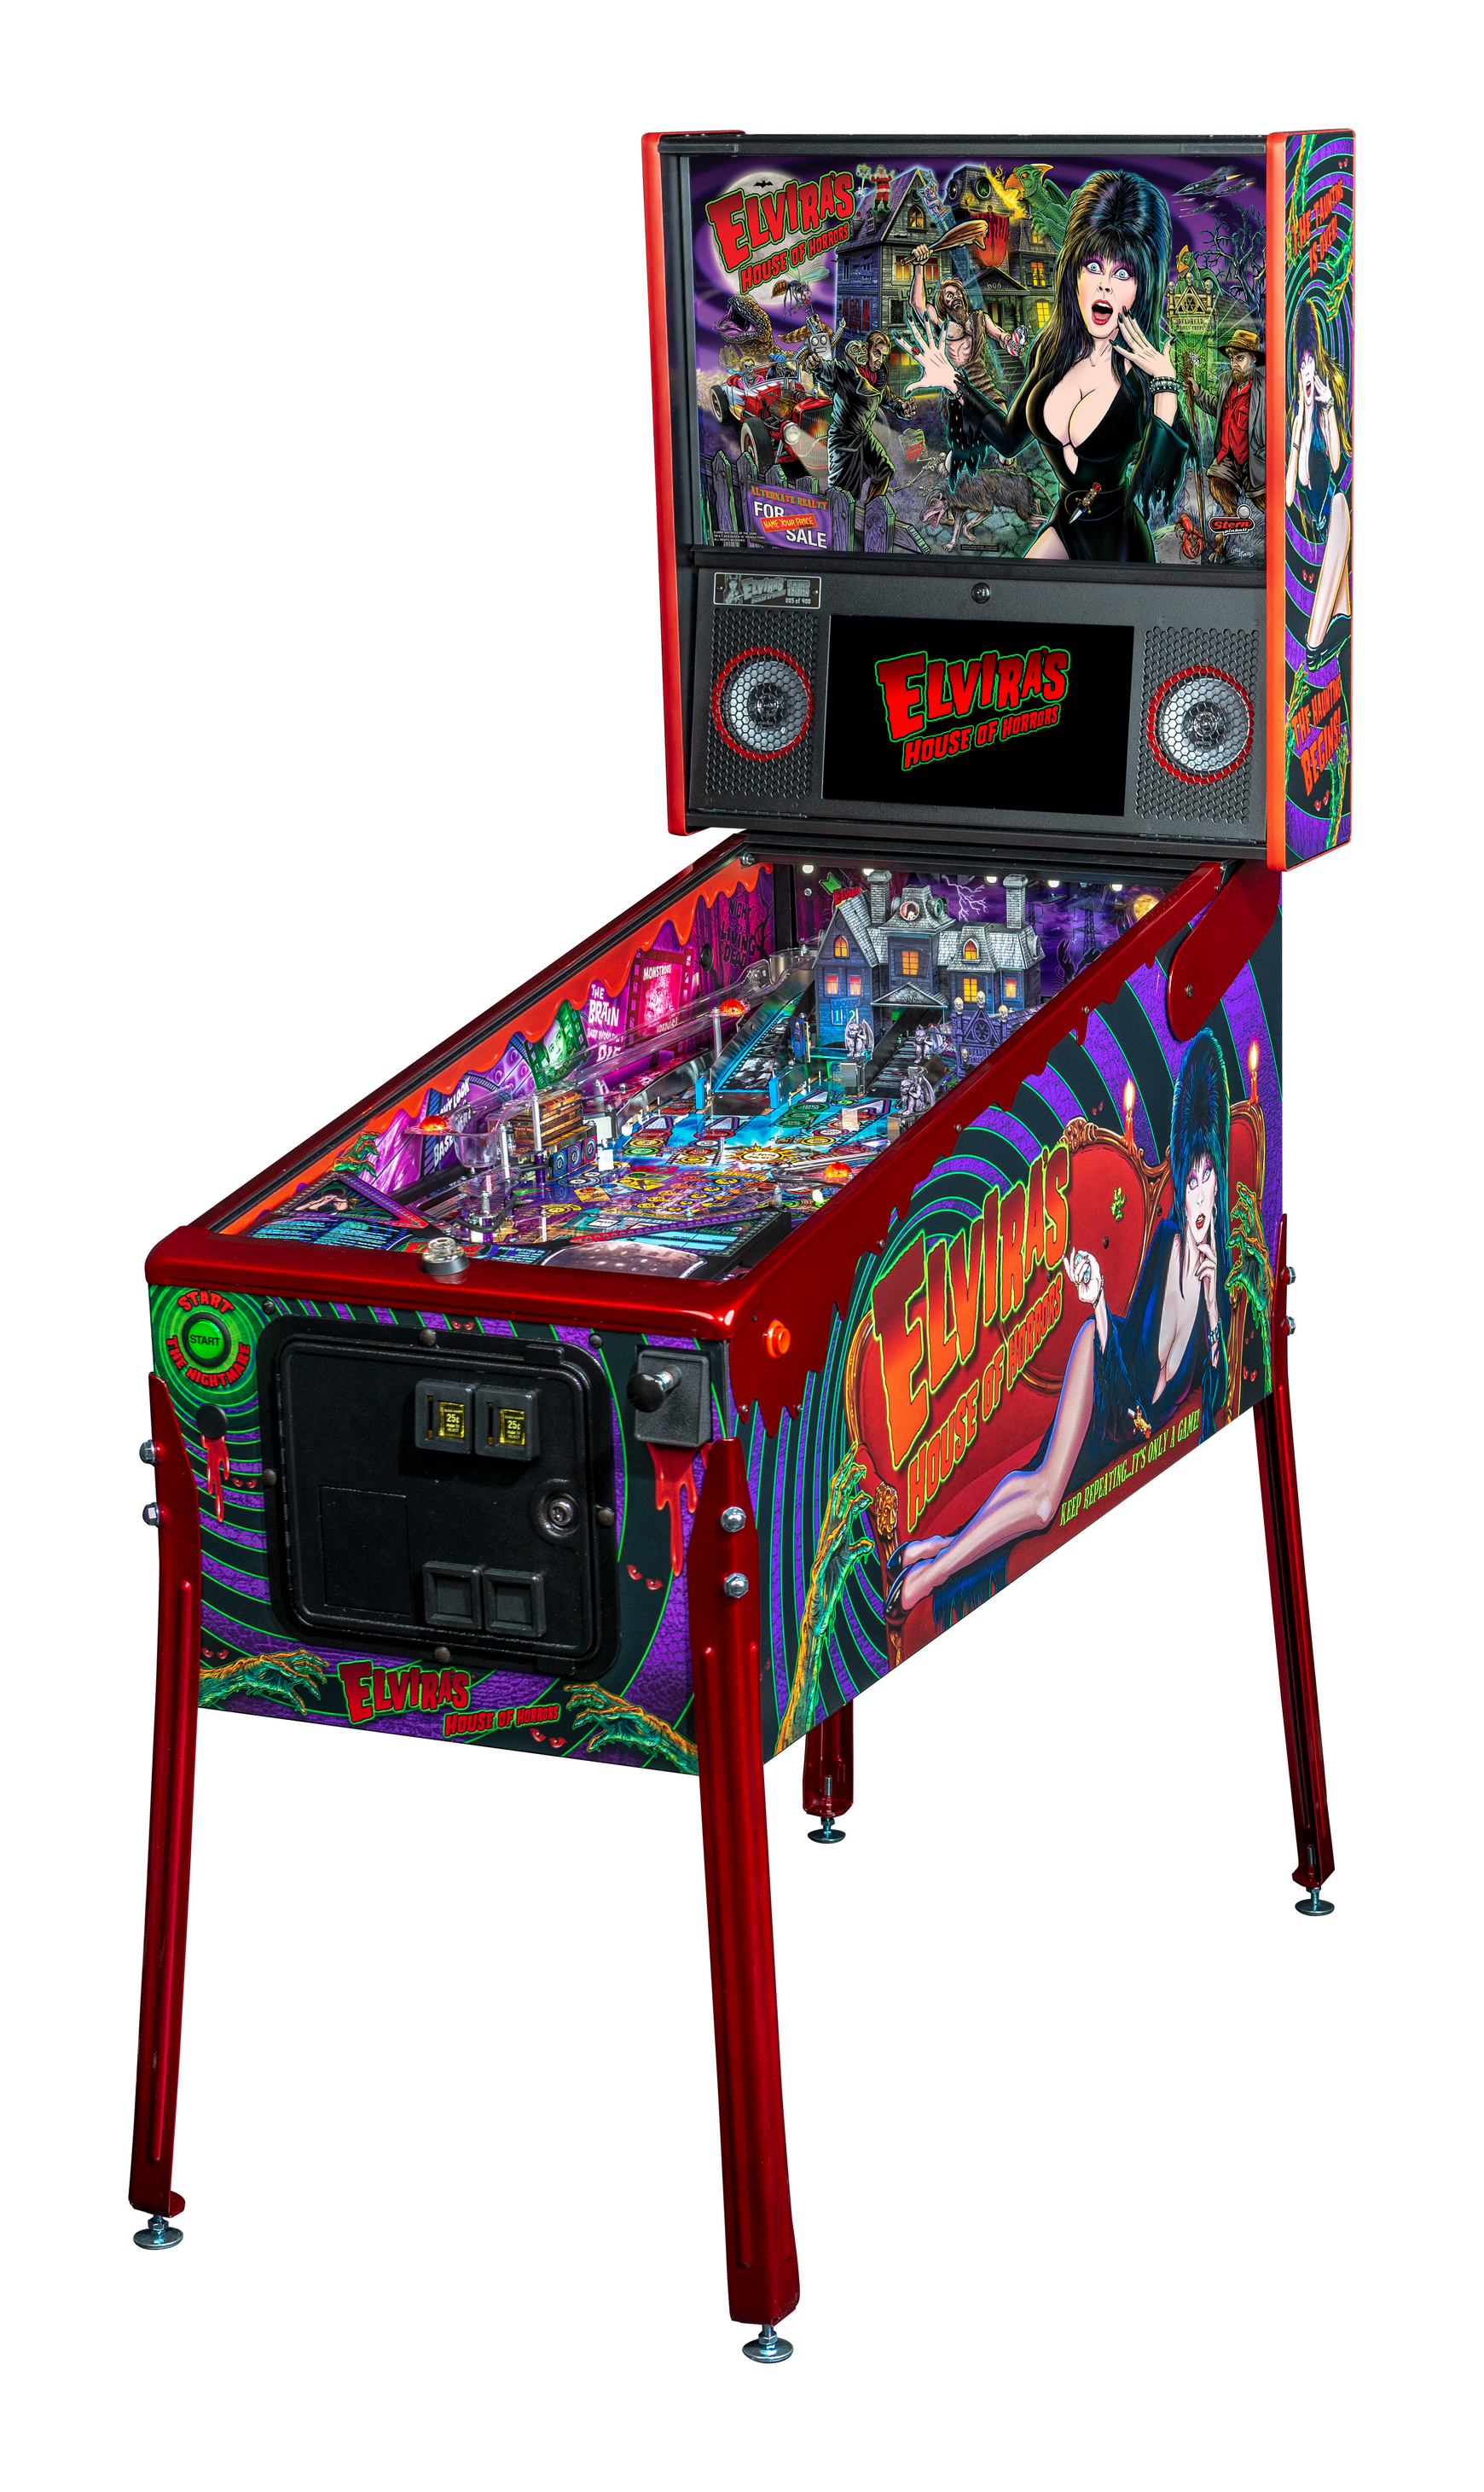 ELVIRA LIMITED EDITION PINBALL - Full Sized Preview